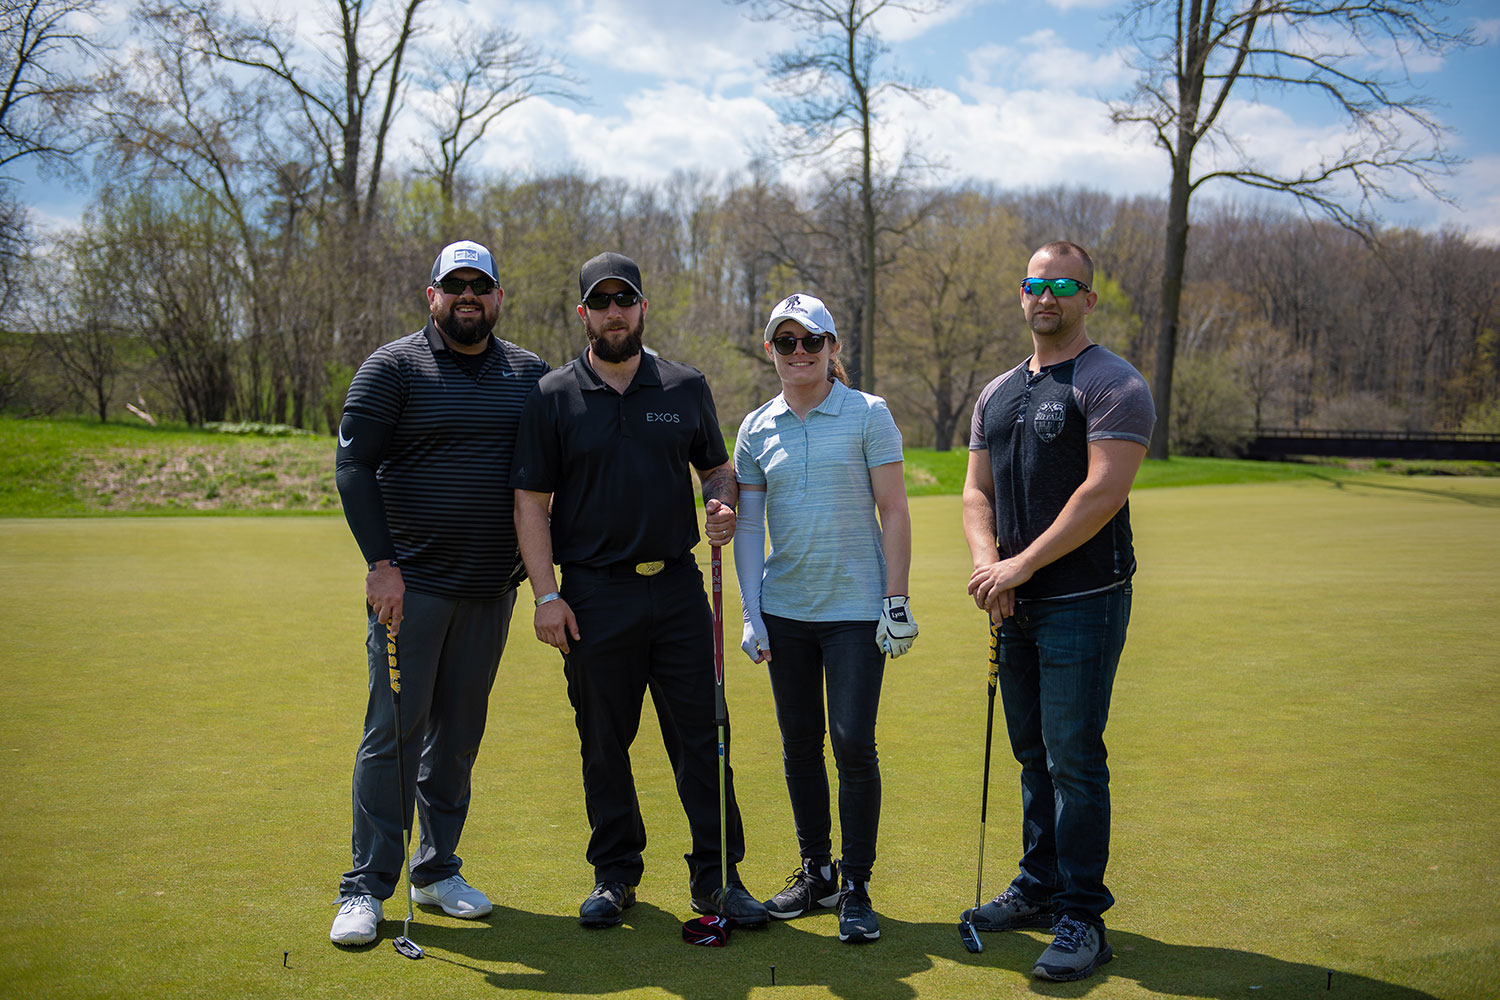 Veterans from Wounded Warrior Project participate in BBCF's annual golf tournament